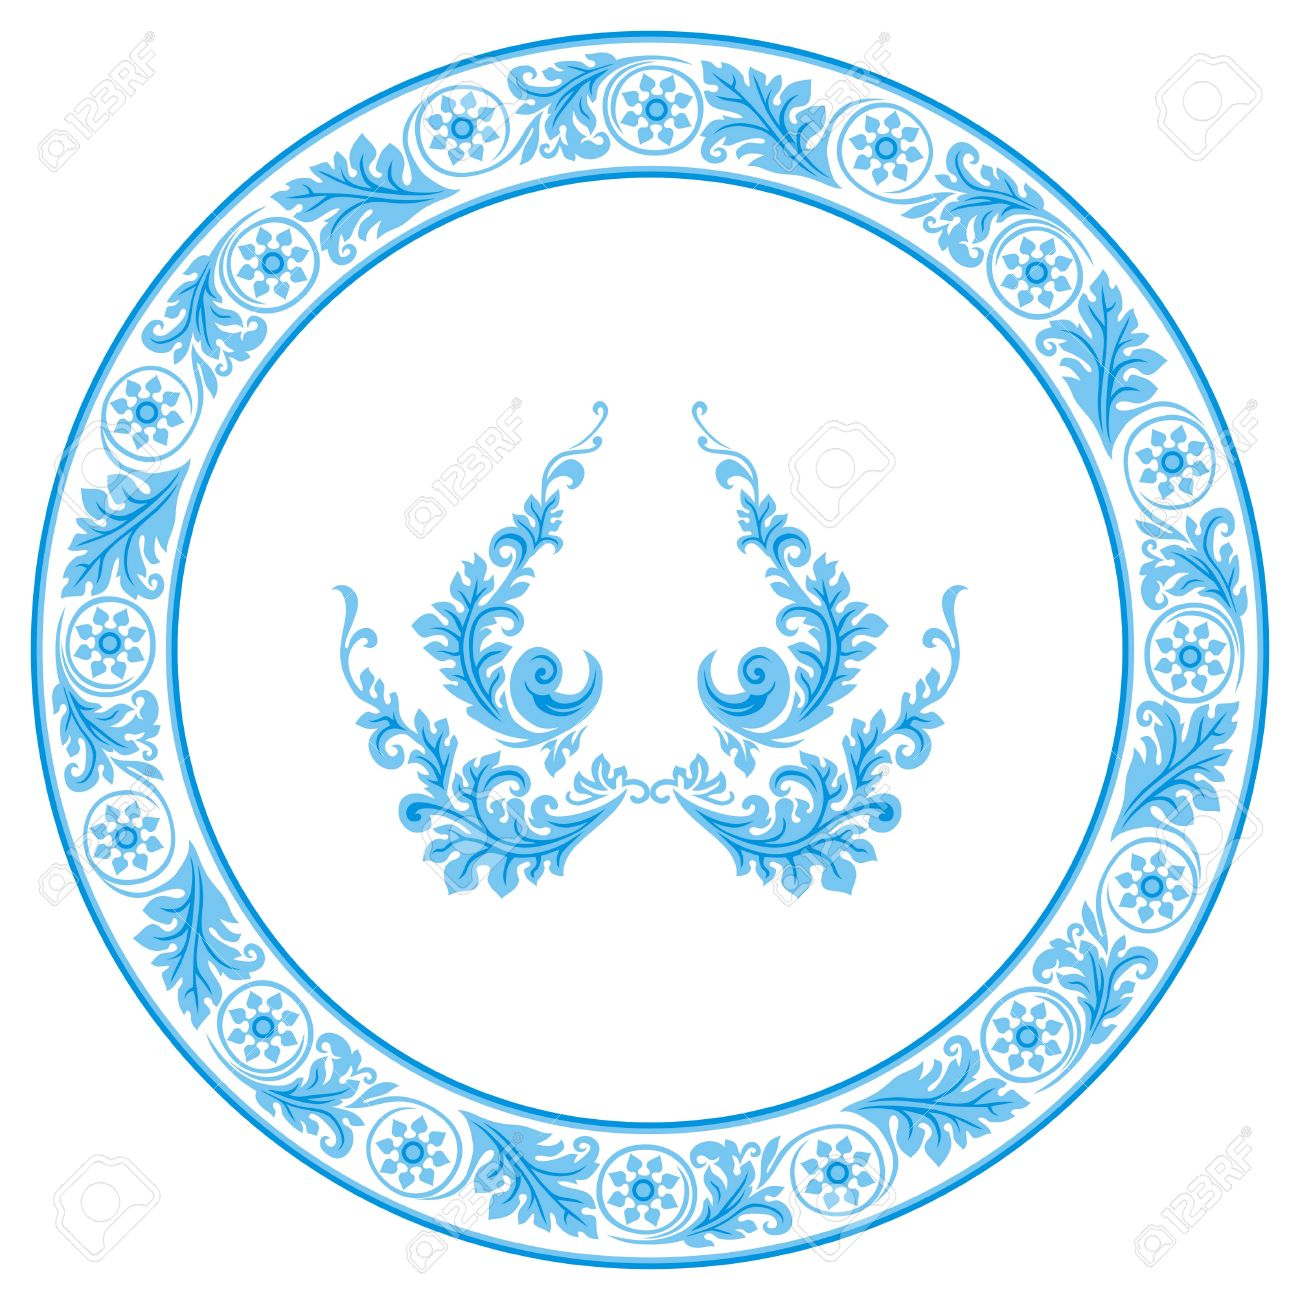 Circular pattern in traditional russian style. Stock Vector - 8578019